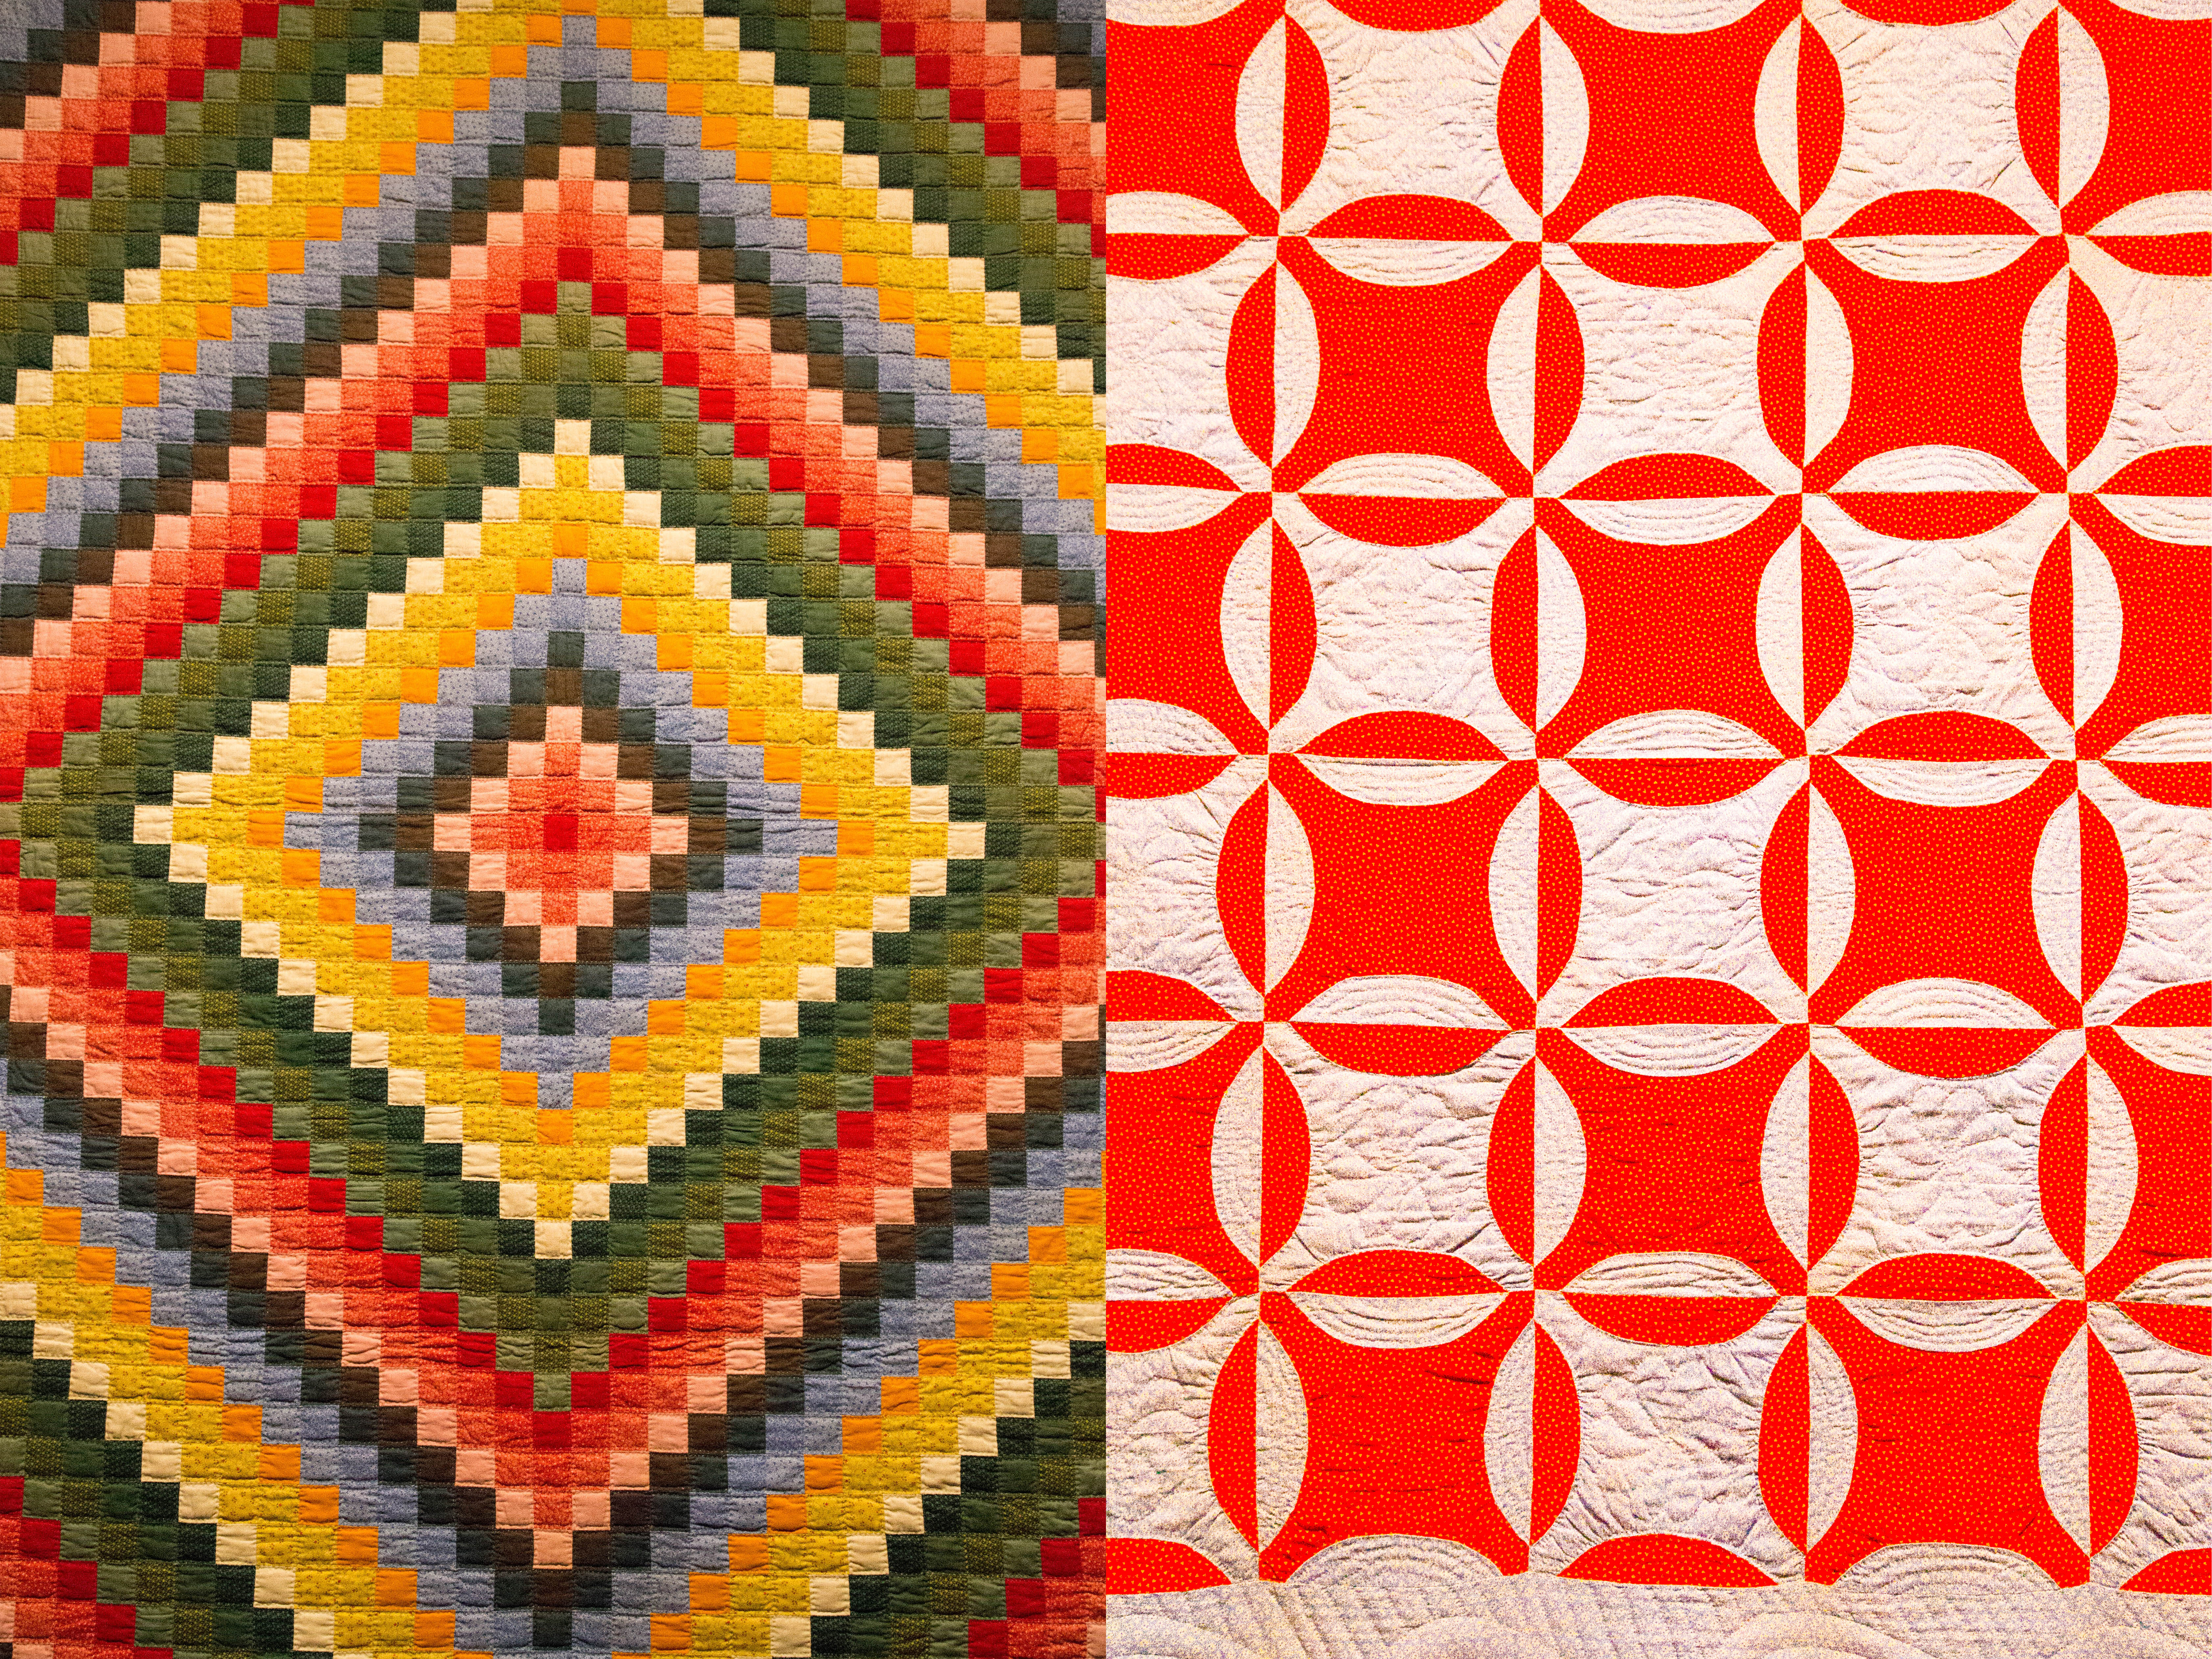 QUILTS AND COLOR | Foraging For Inspiration : quilts and color - Adamdwight.com